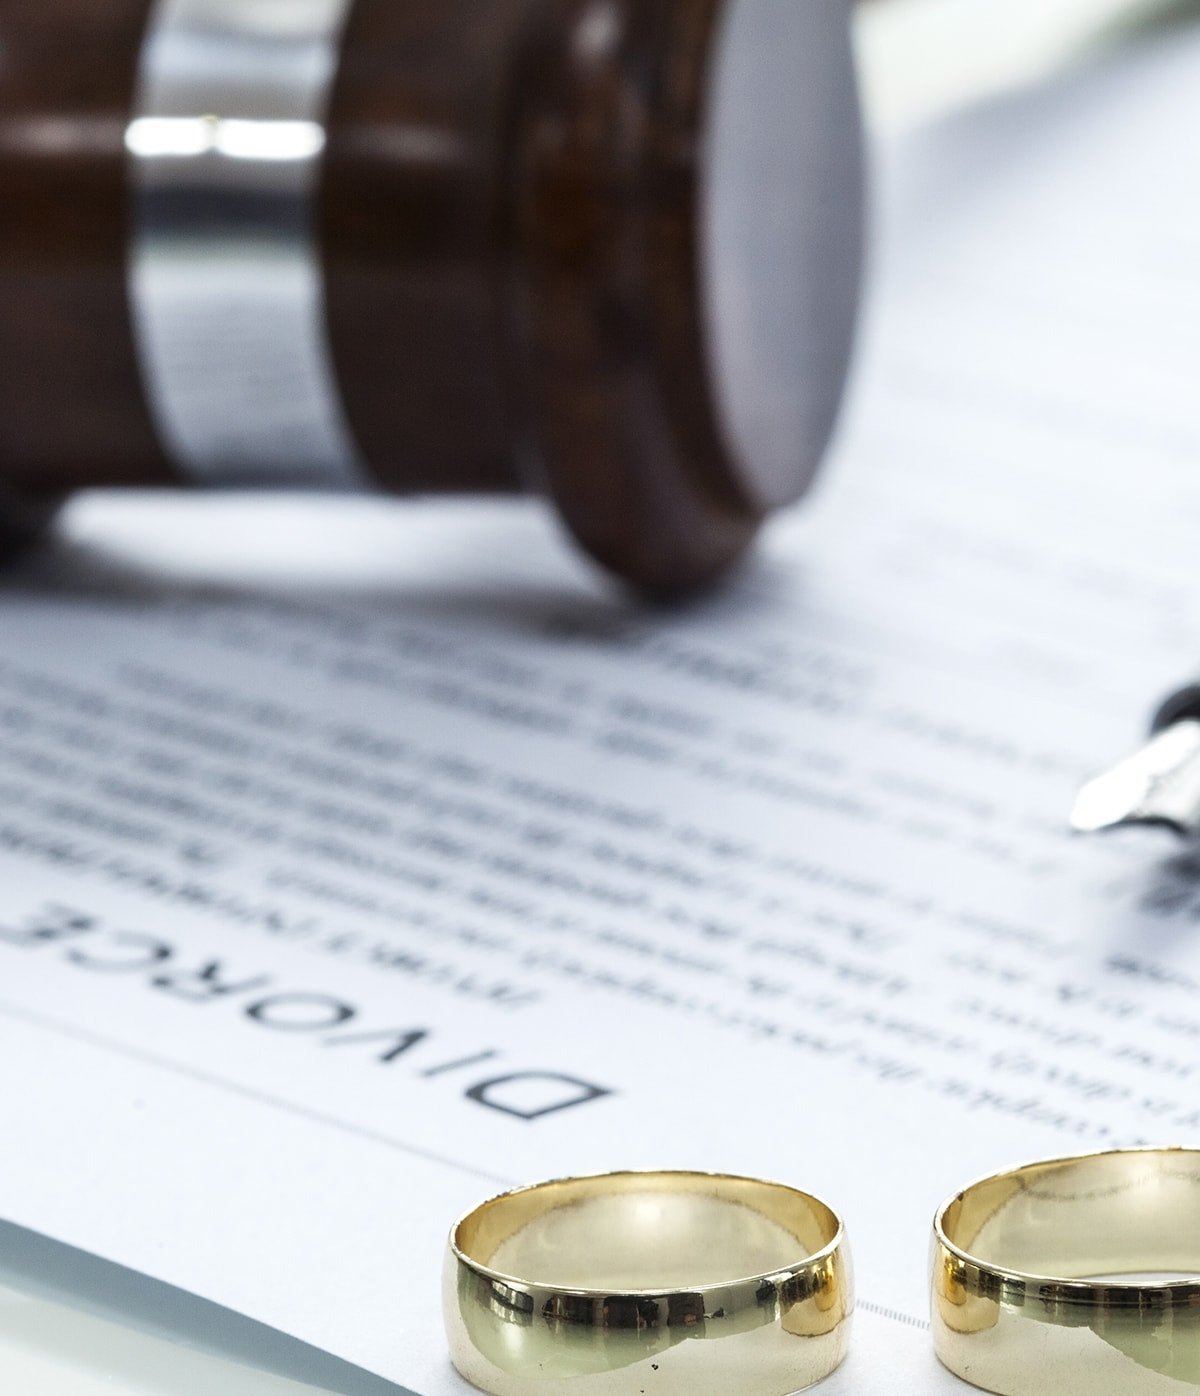 divorce contract with rings and gavel